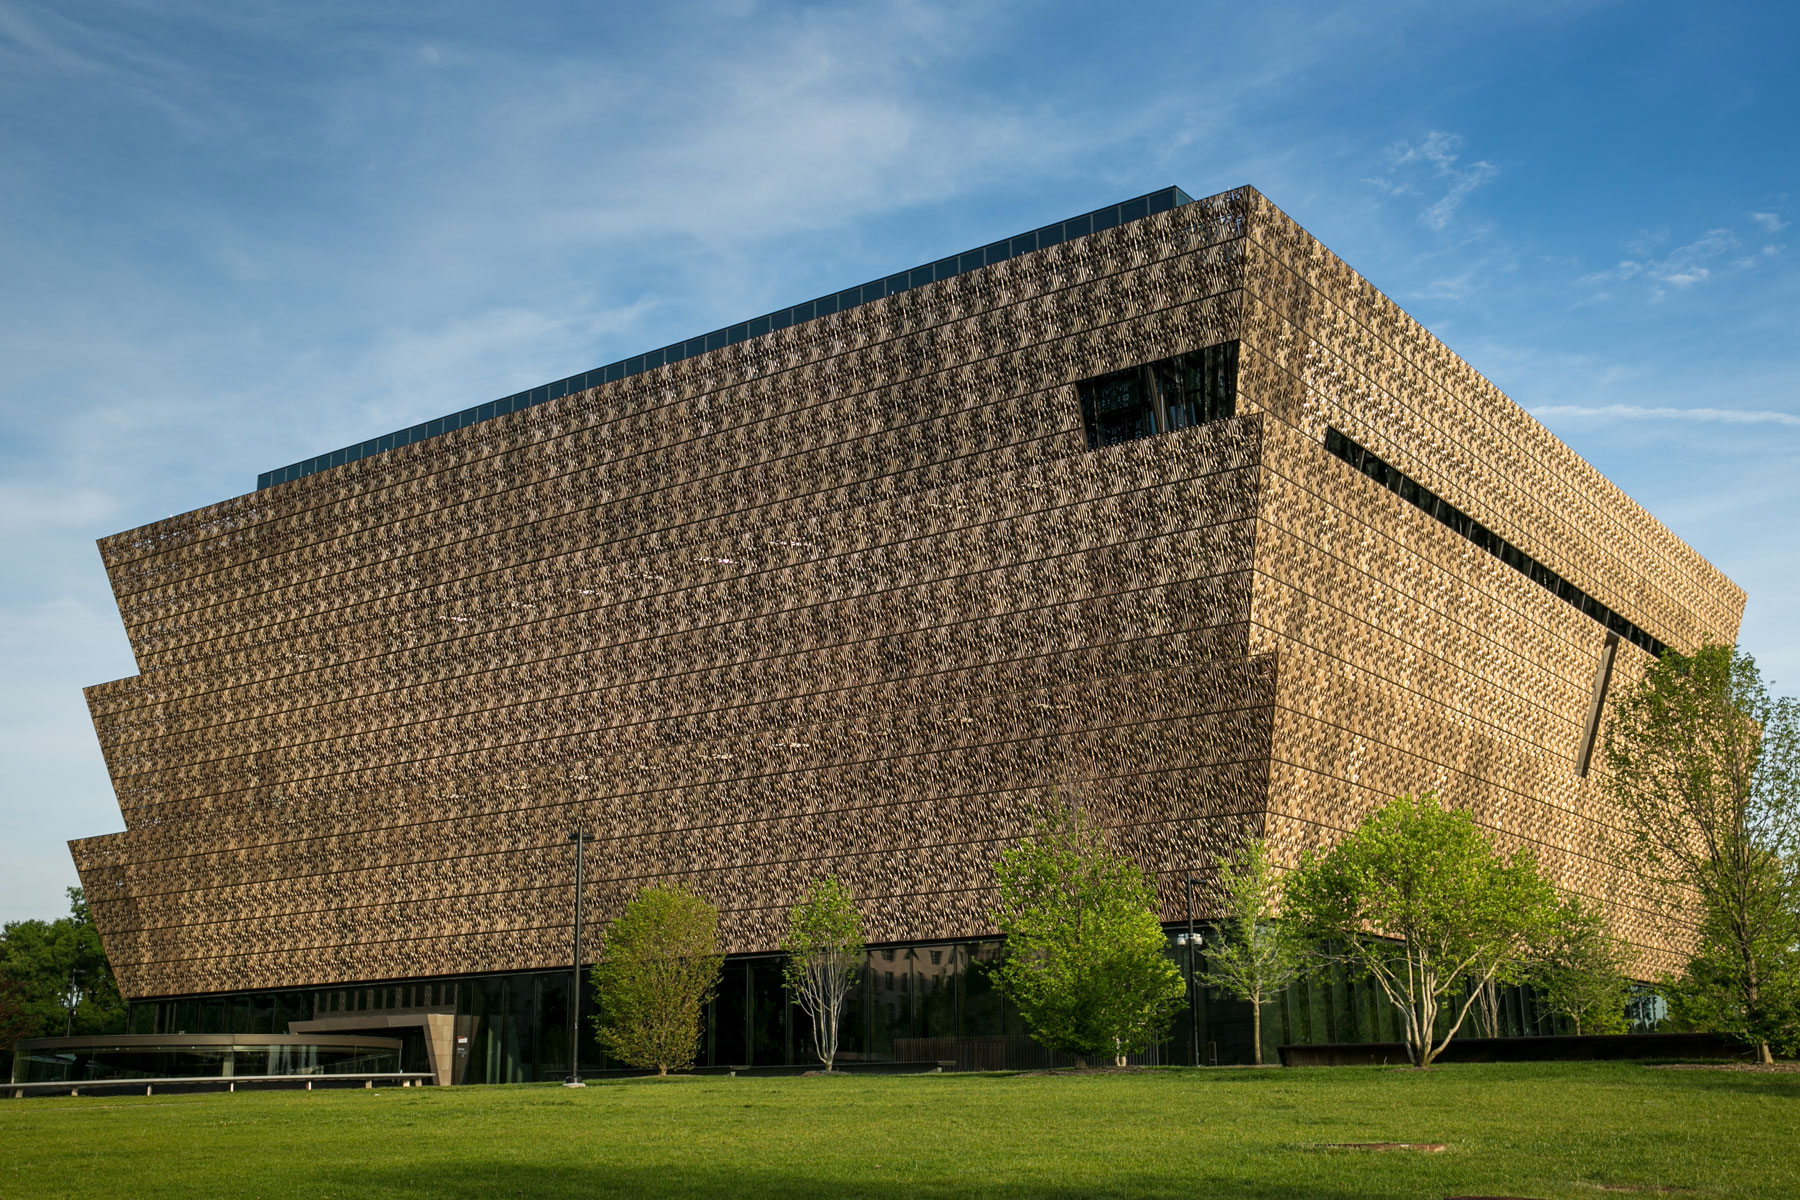 Exterior of National Museum of African American History